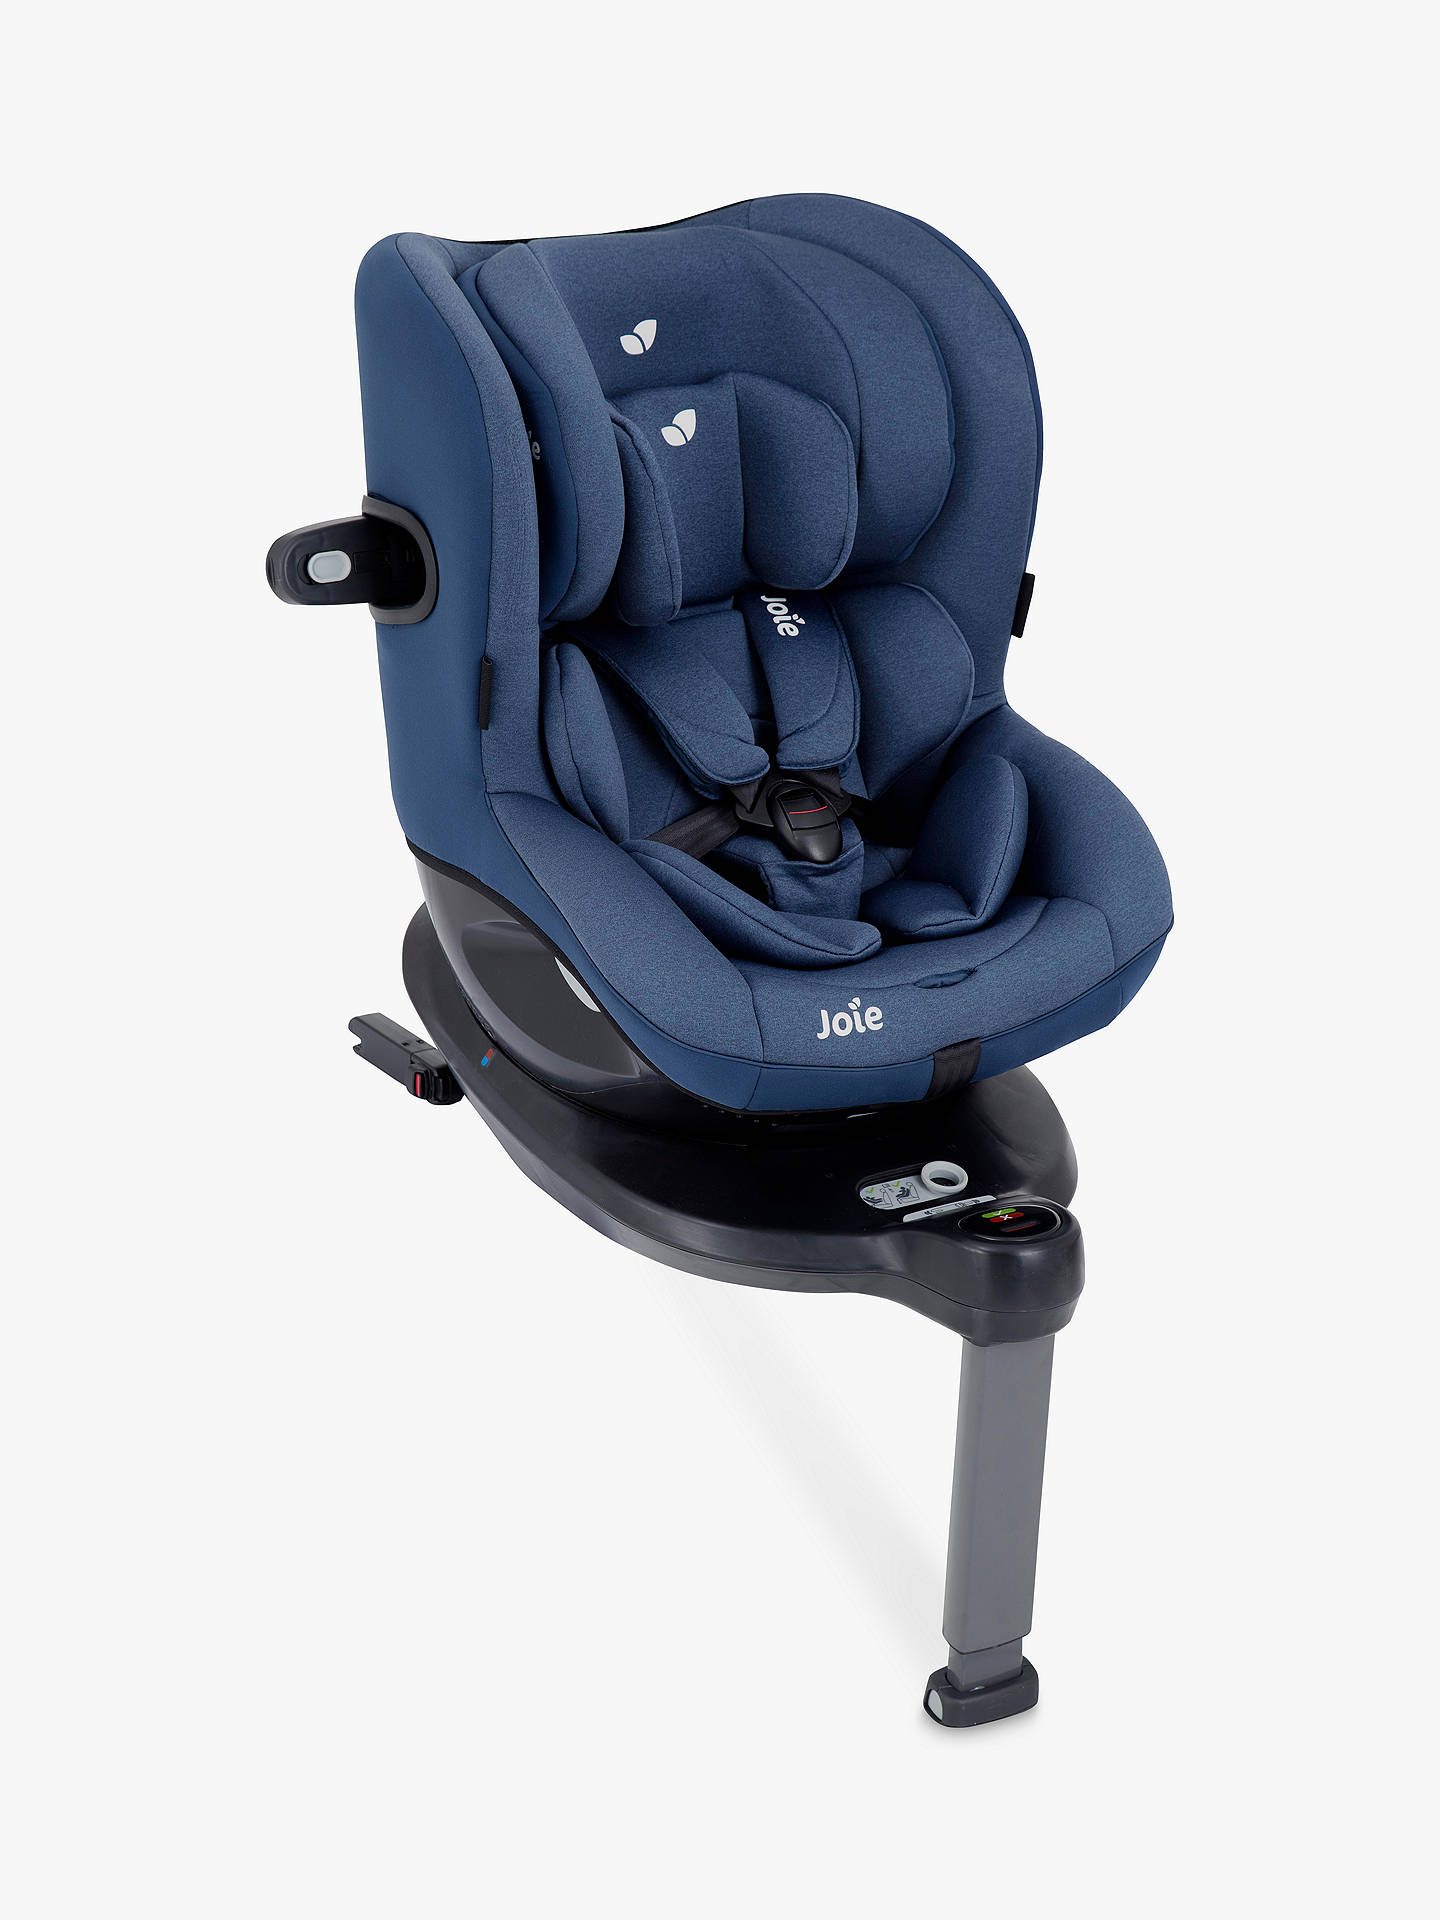 Joie Baby i-Spin 360 i-Size Group 0+/1 Car Seat, Deep Sea ...